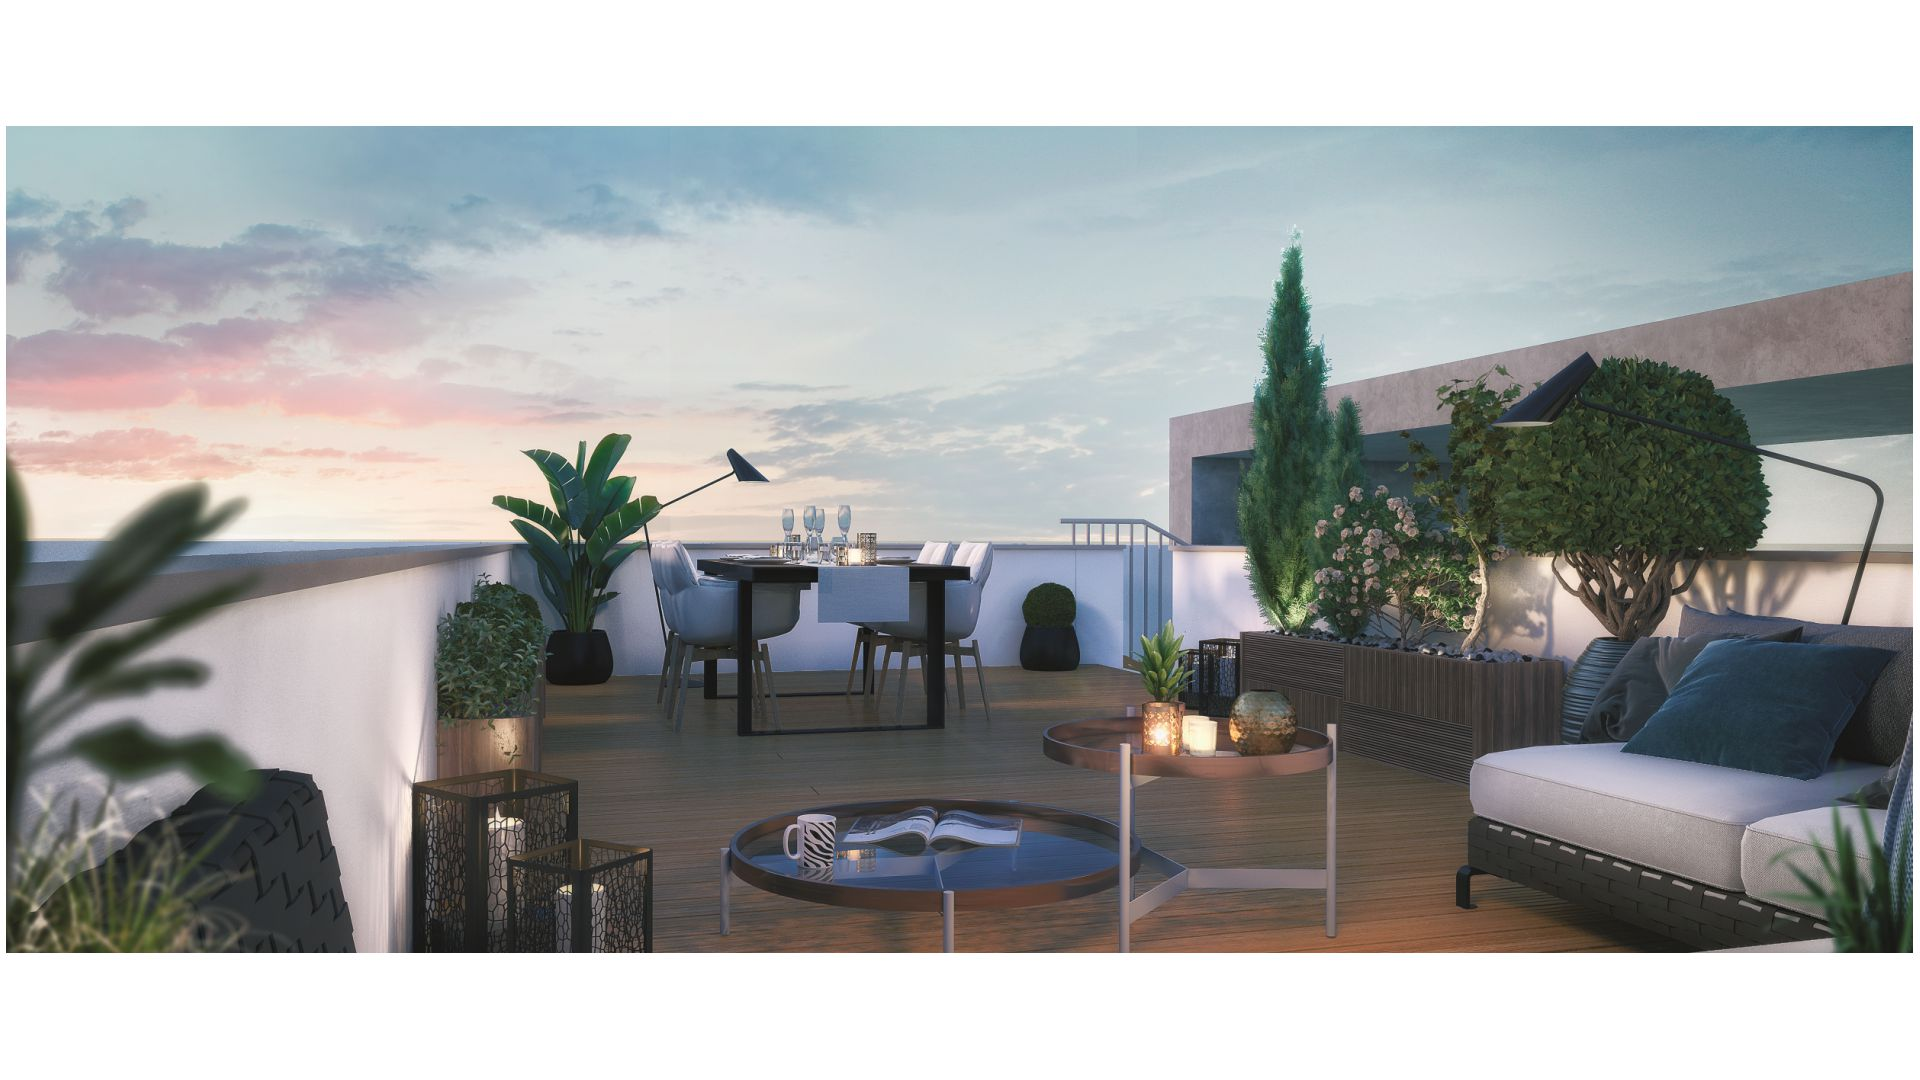 GreenCity immobilier - Champigny sur Marne - 94500 - residence le belvedere - immobilier neuf du T1Bis au T4 - vue terrasse